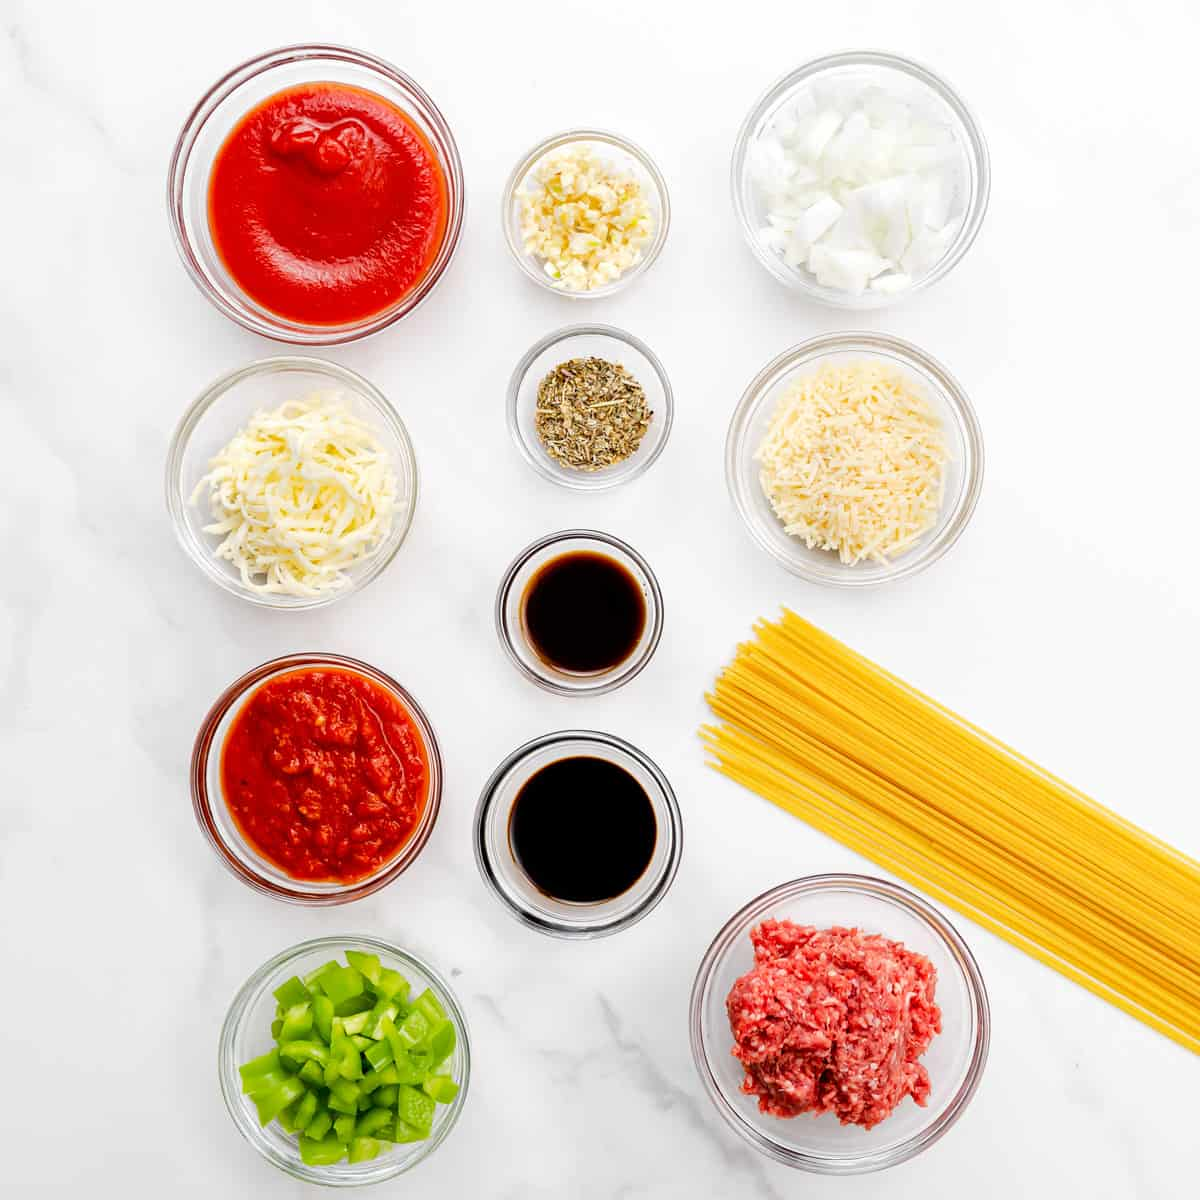 ingredients to make meat sauce for spaghetti.